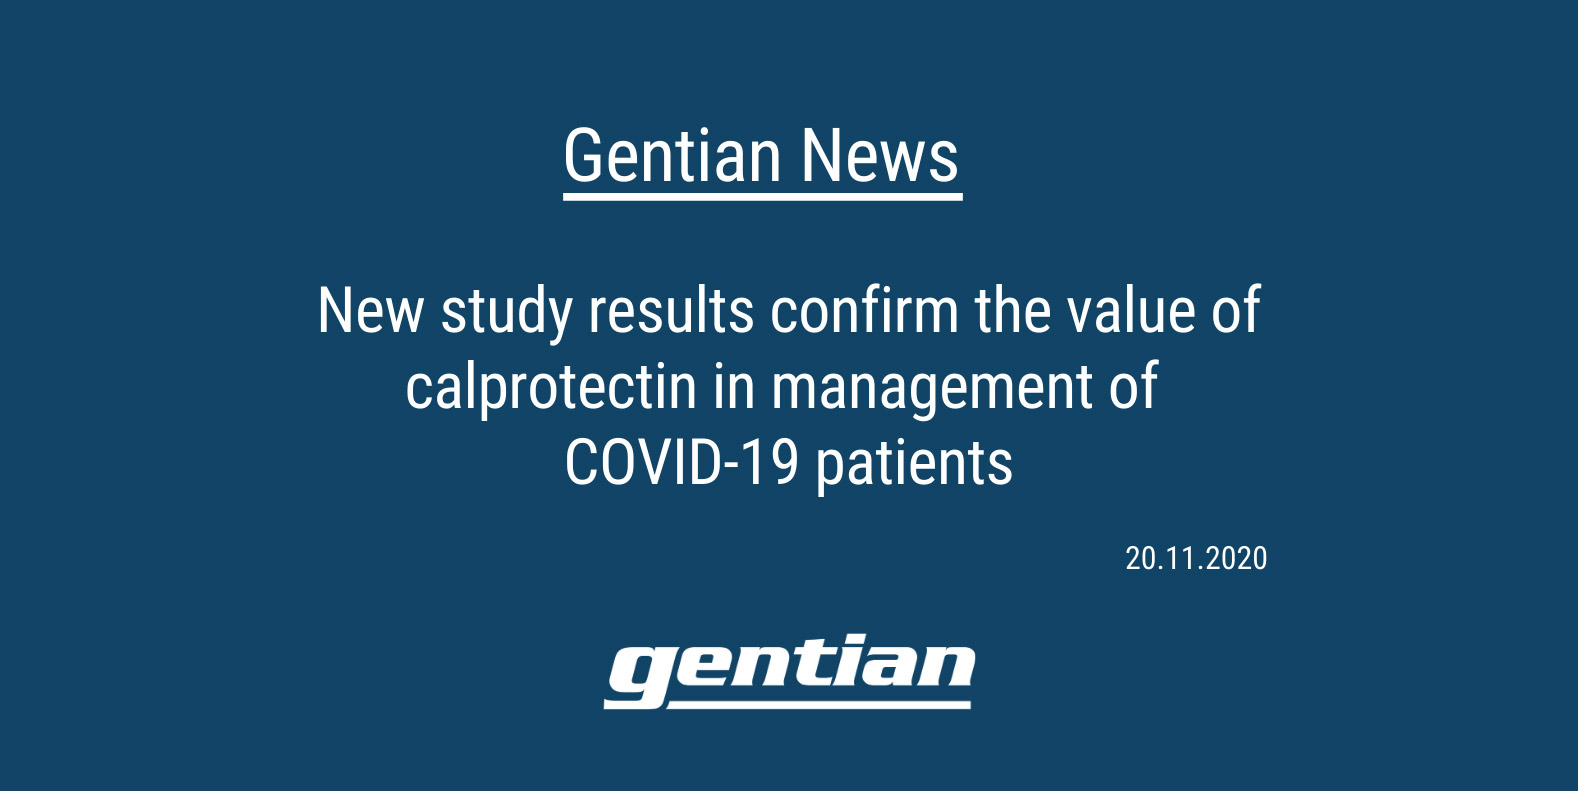 New study results confirm the value of calprotectin in management of COVID-19 patients